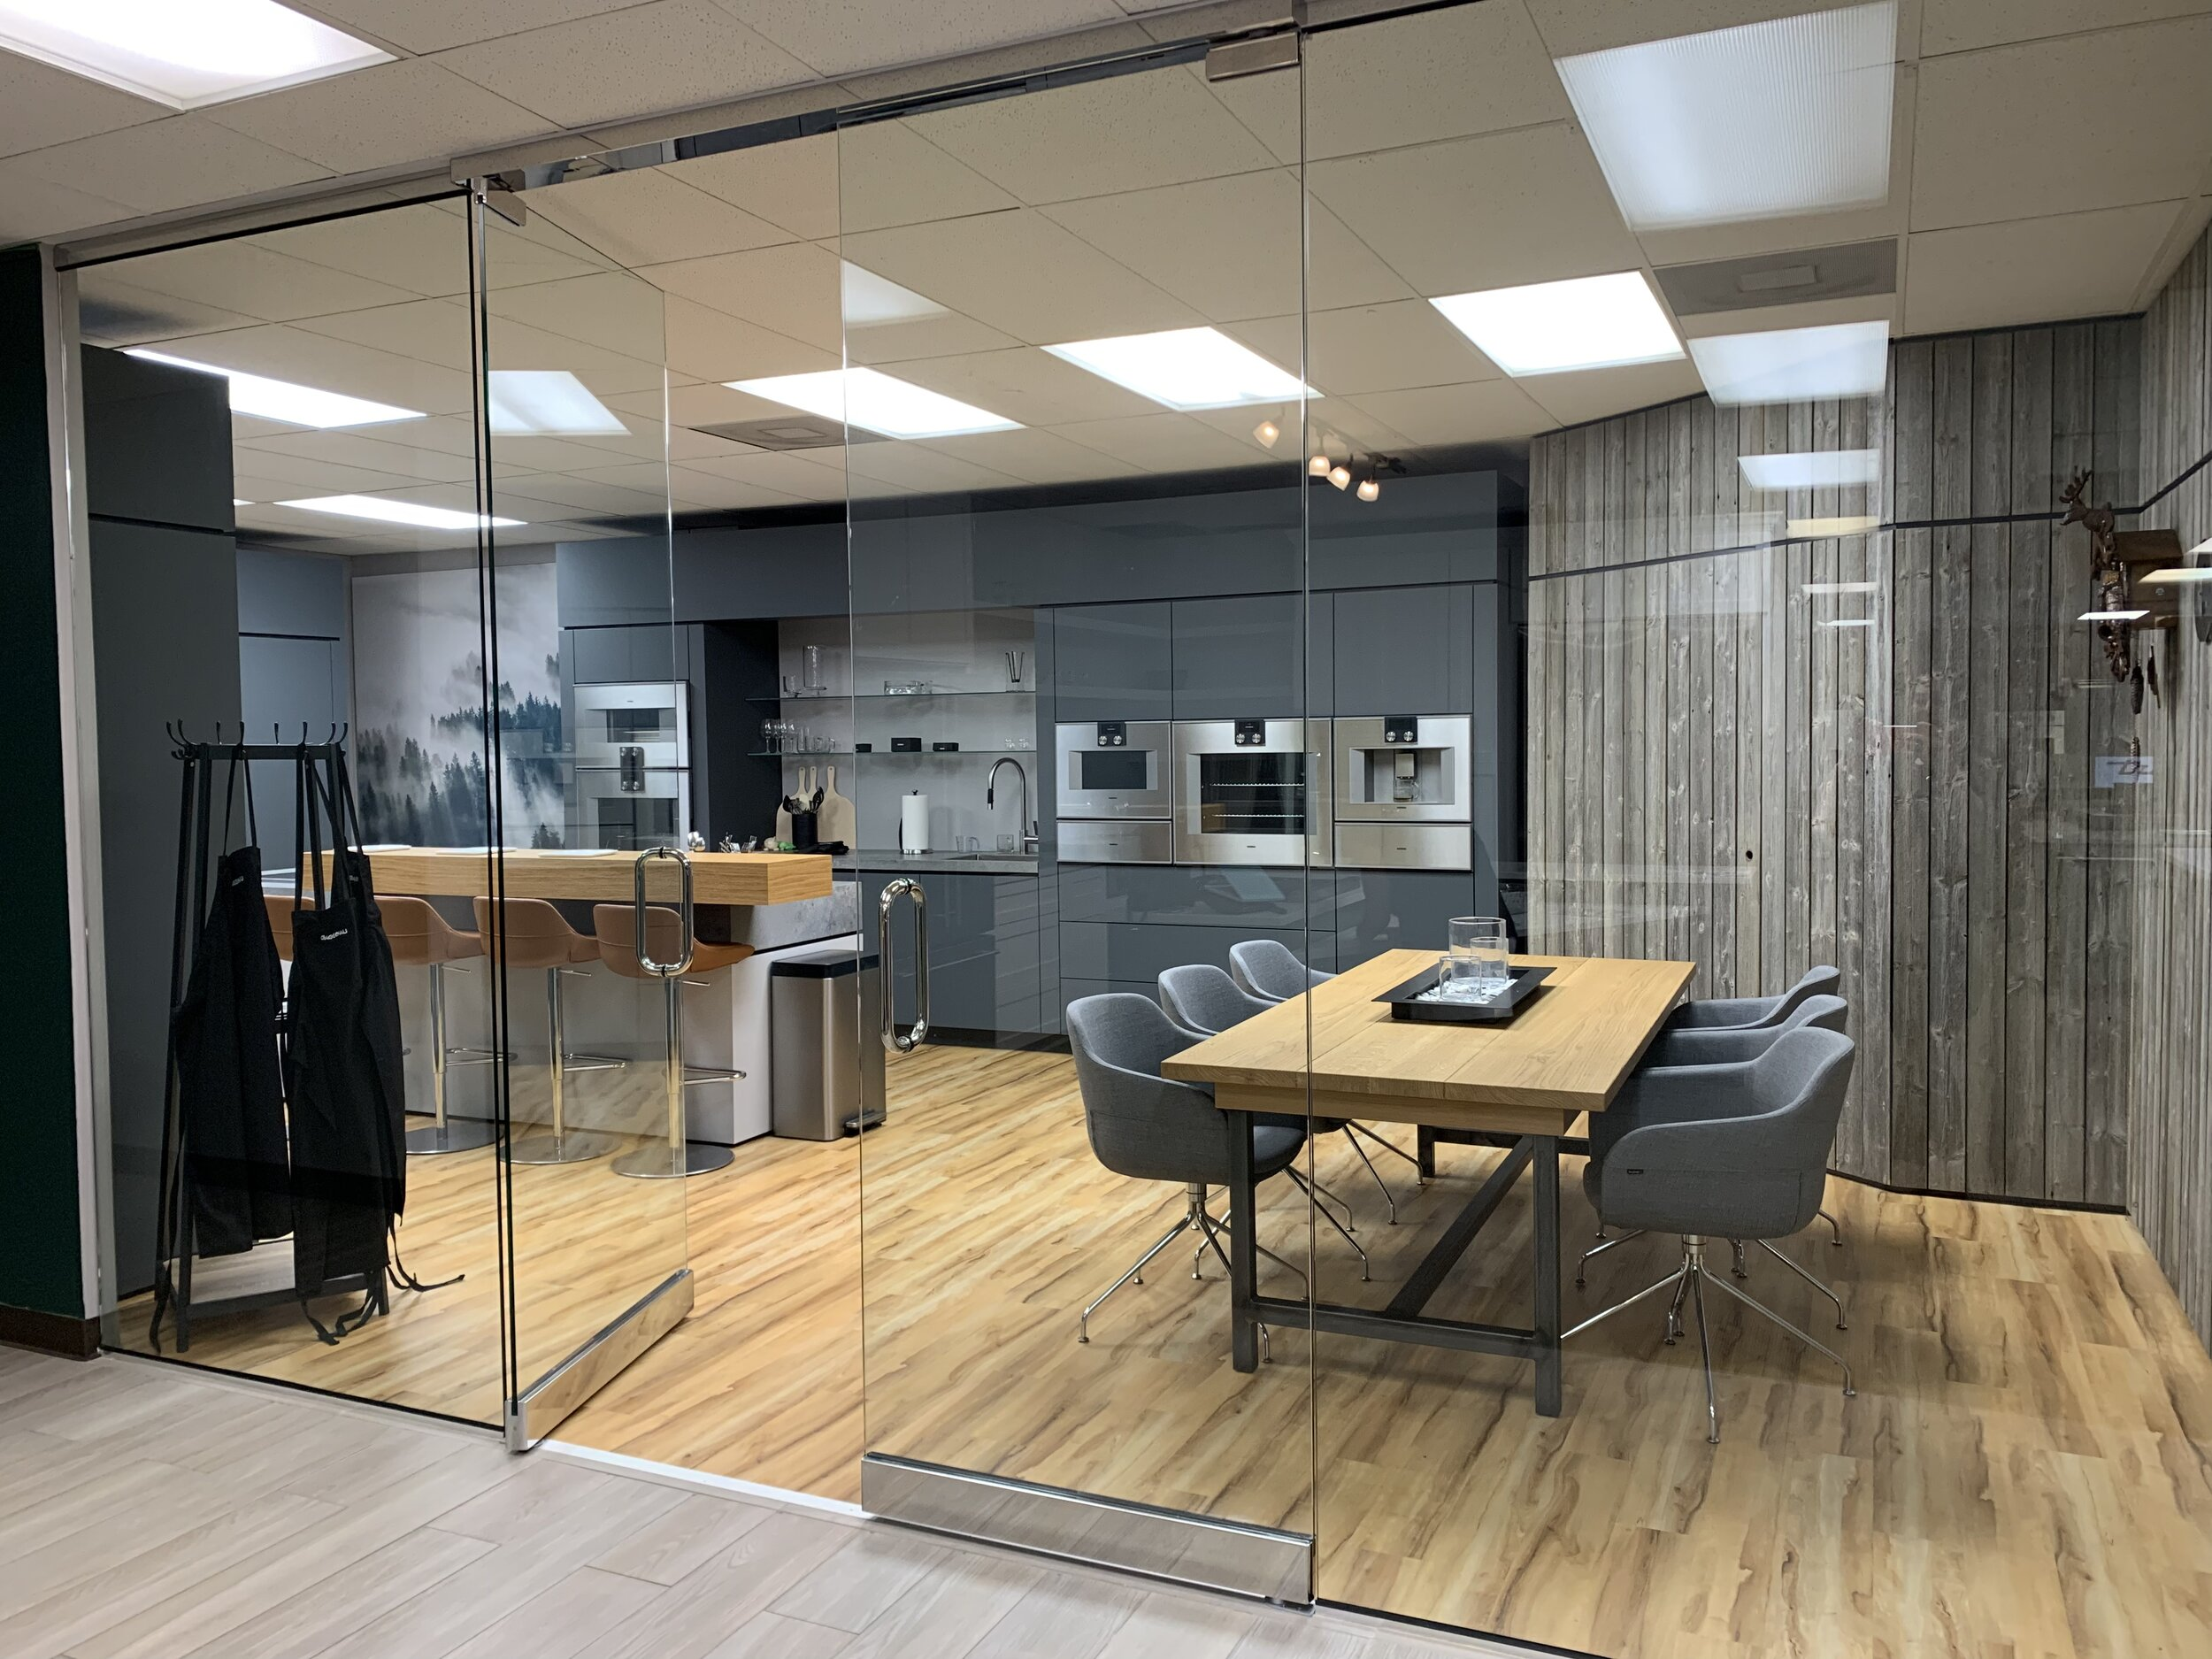 The Gaggenau showroom can be found at AUTCOhome Appliance store in Fenton, 1694 Larkin Williams Rd.